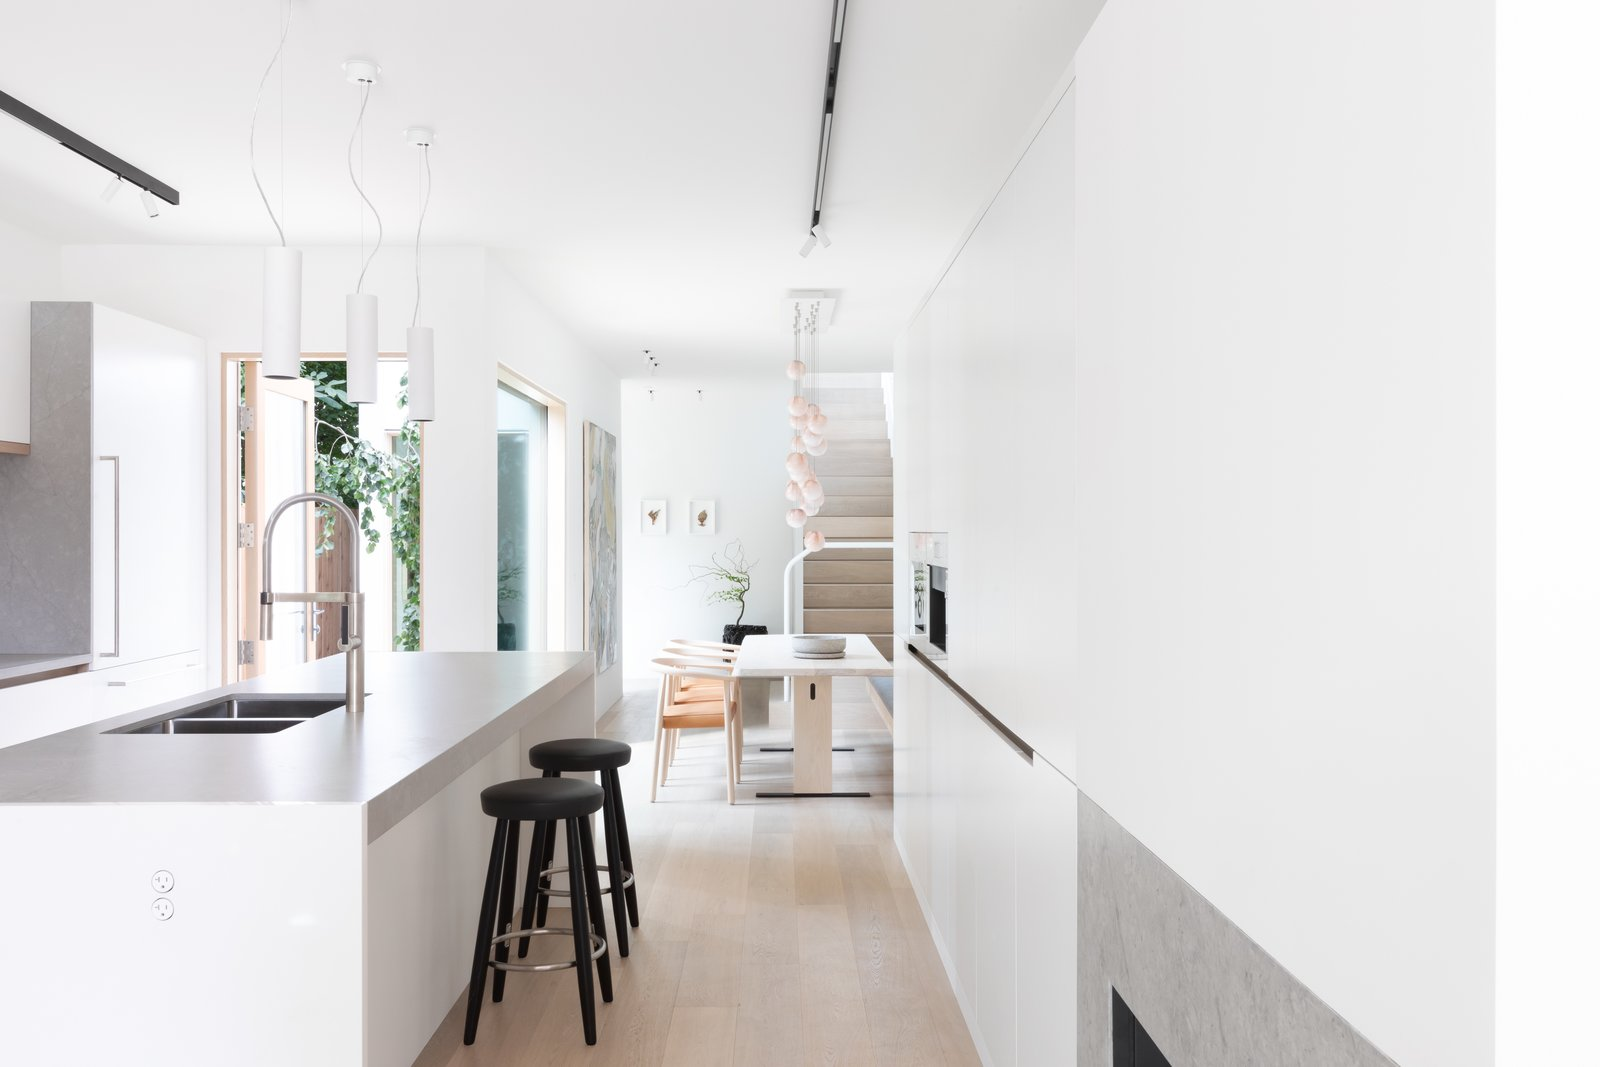 11 Skylights Brighten a Compact, Narrow Home in Vancouver